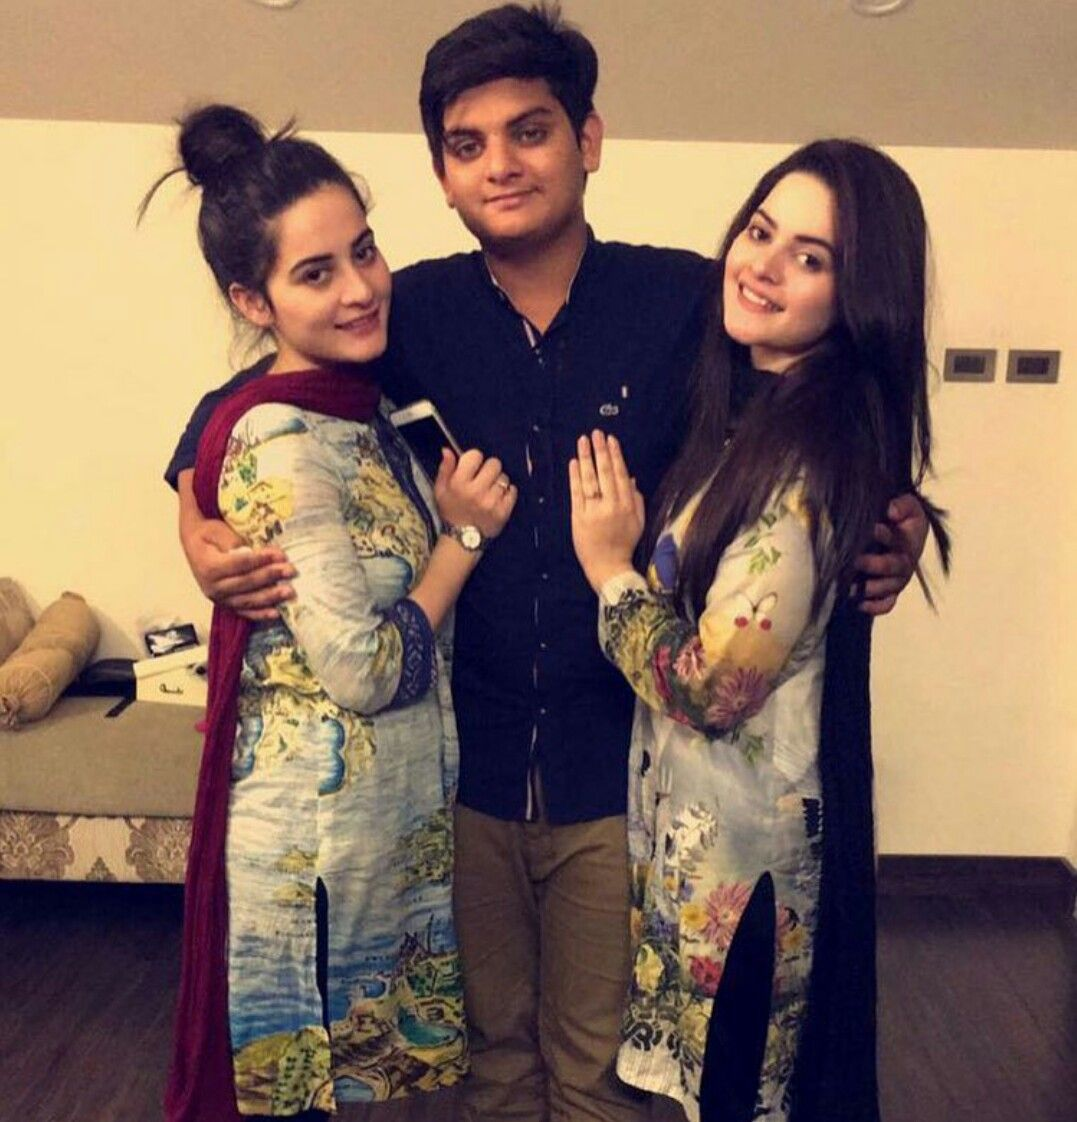 Beautiful Twins Sisters Aiman Khan And Minal Khan With Her -6824